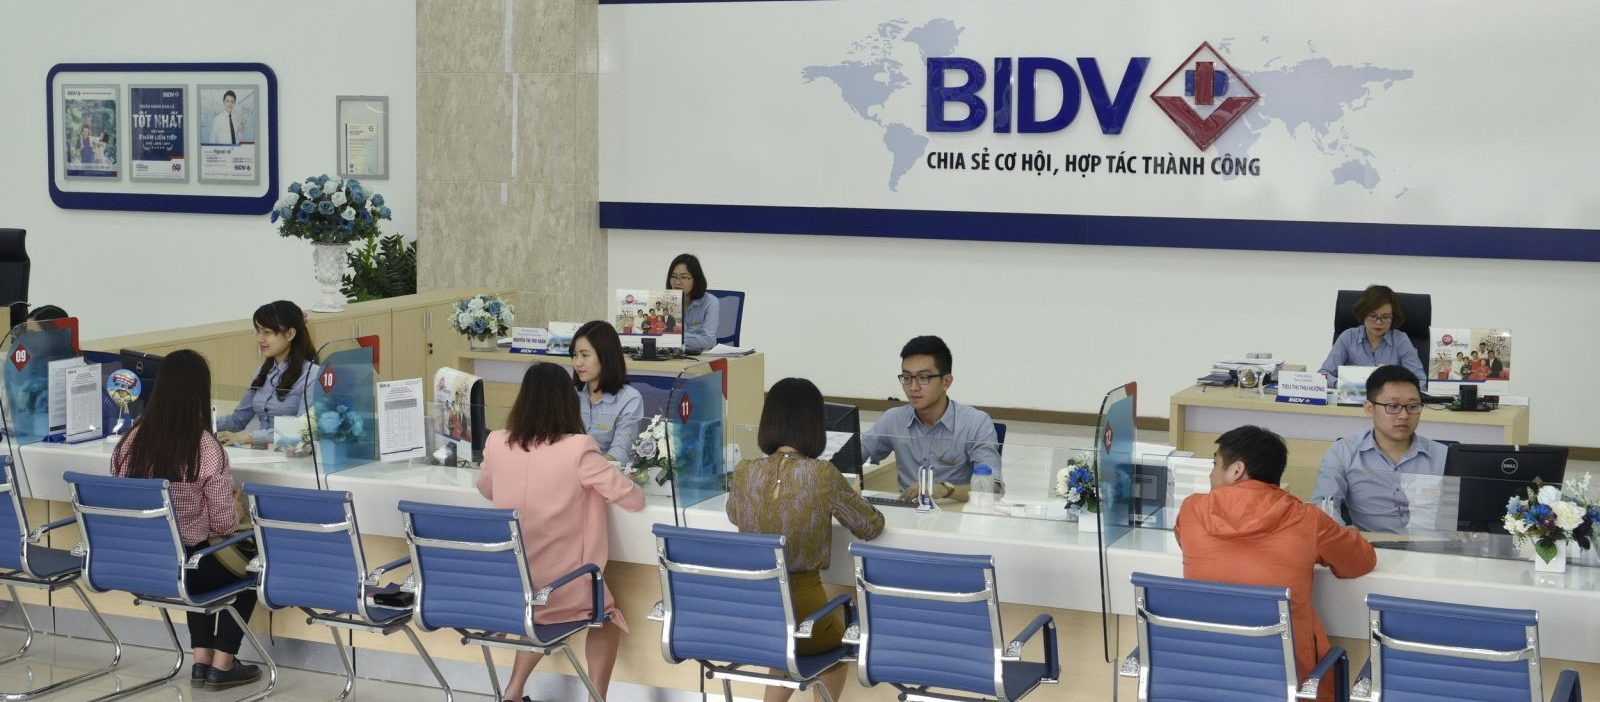 Vietnam arrests former BIDV banker amid graft crackdown